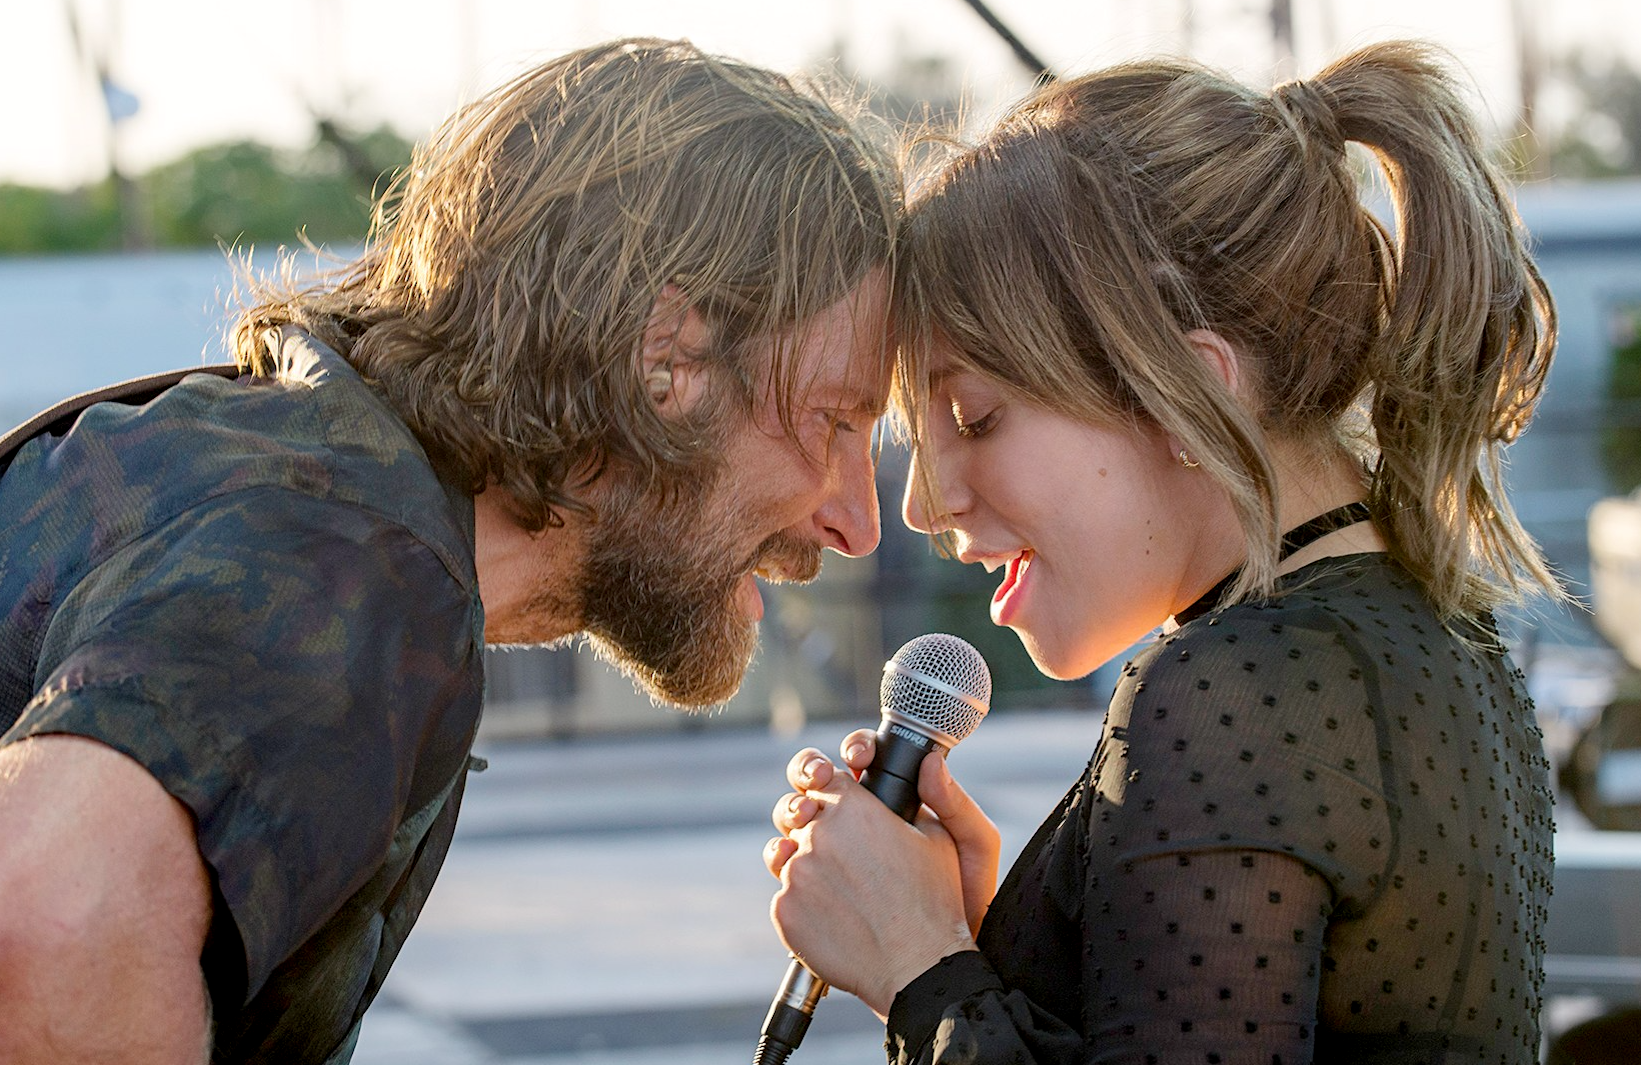 Bradley Cooper and Lady Gaga in A Star is Born airing tonight on HBO. (Neal Preston/Warner Bros. Pictures)